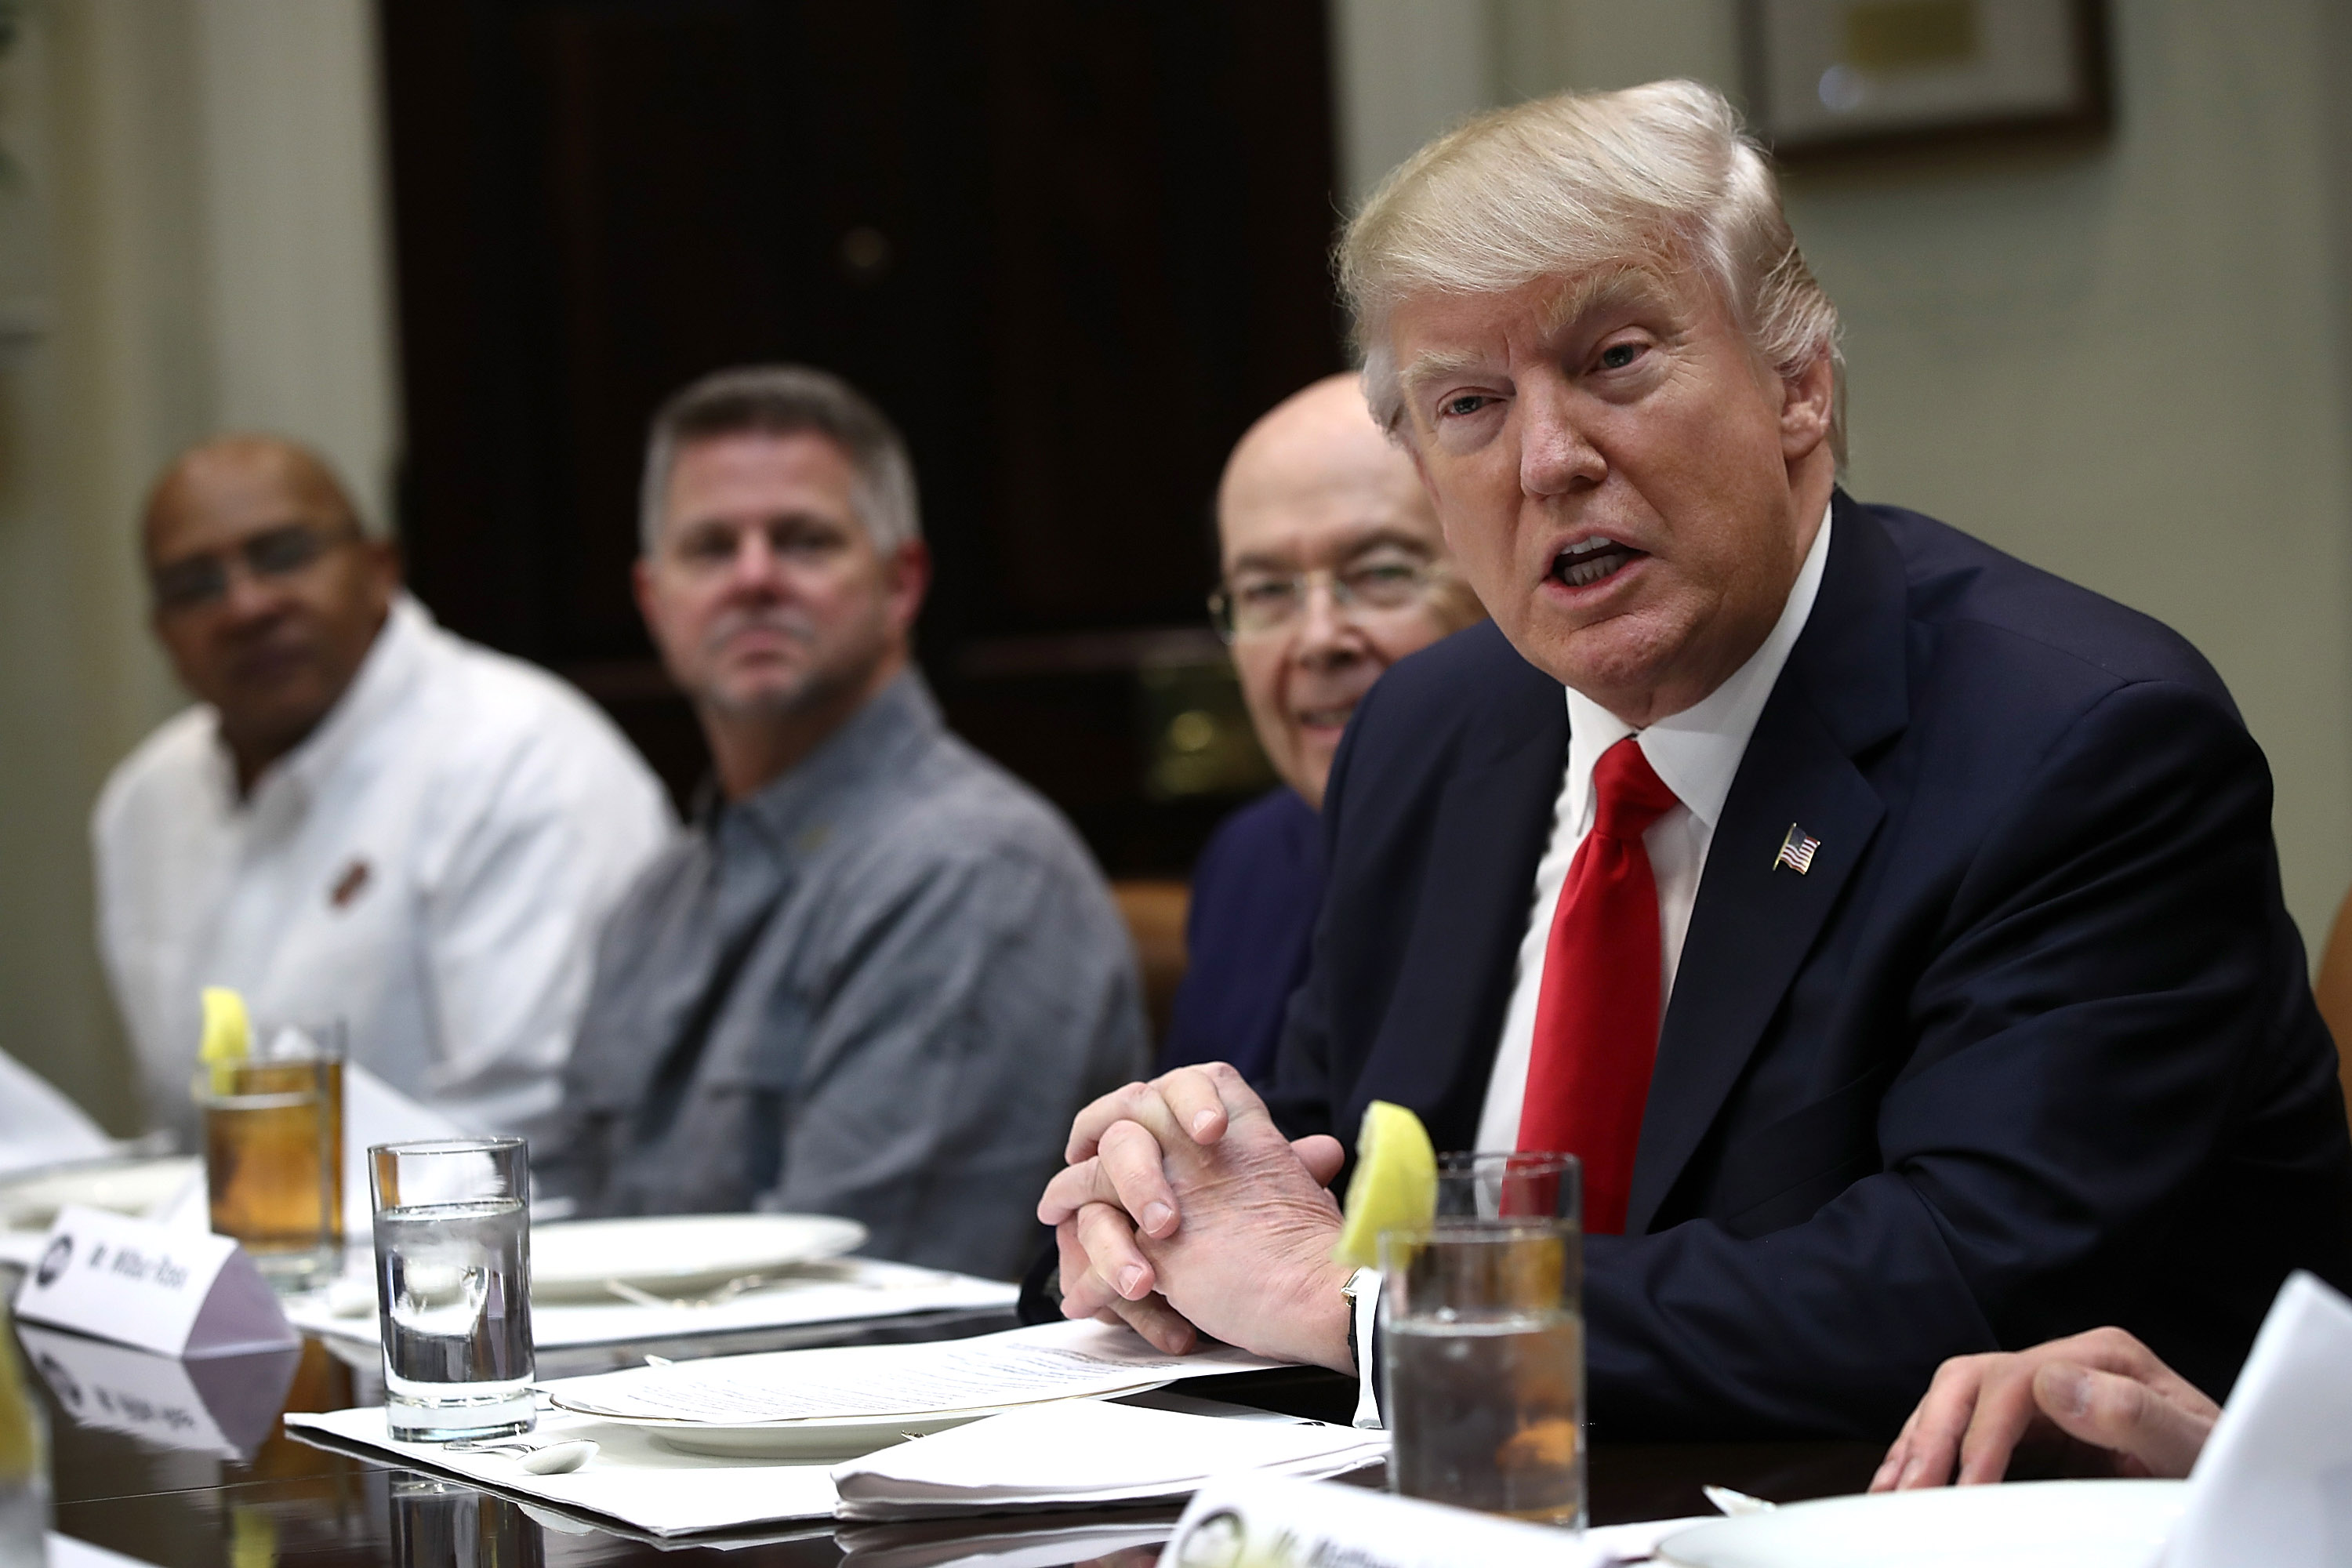 WASHINGTON, DC - FEBRUARY 02:  (AFP OUT) U.S. President Donald Trump speaks while meeting with executives and union representatives from the Harley Davidson company at the White House on February 2, 2017 in Washington, DC. At the end of the photo opportunity, Trump said  nothing is off the table  in relation to current disagreements between the U.S. and Iran.  (Photo by Win McNamee/Getty Images)